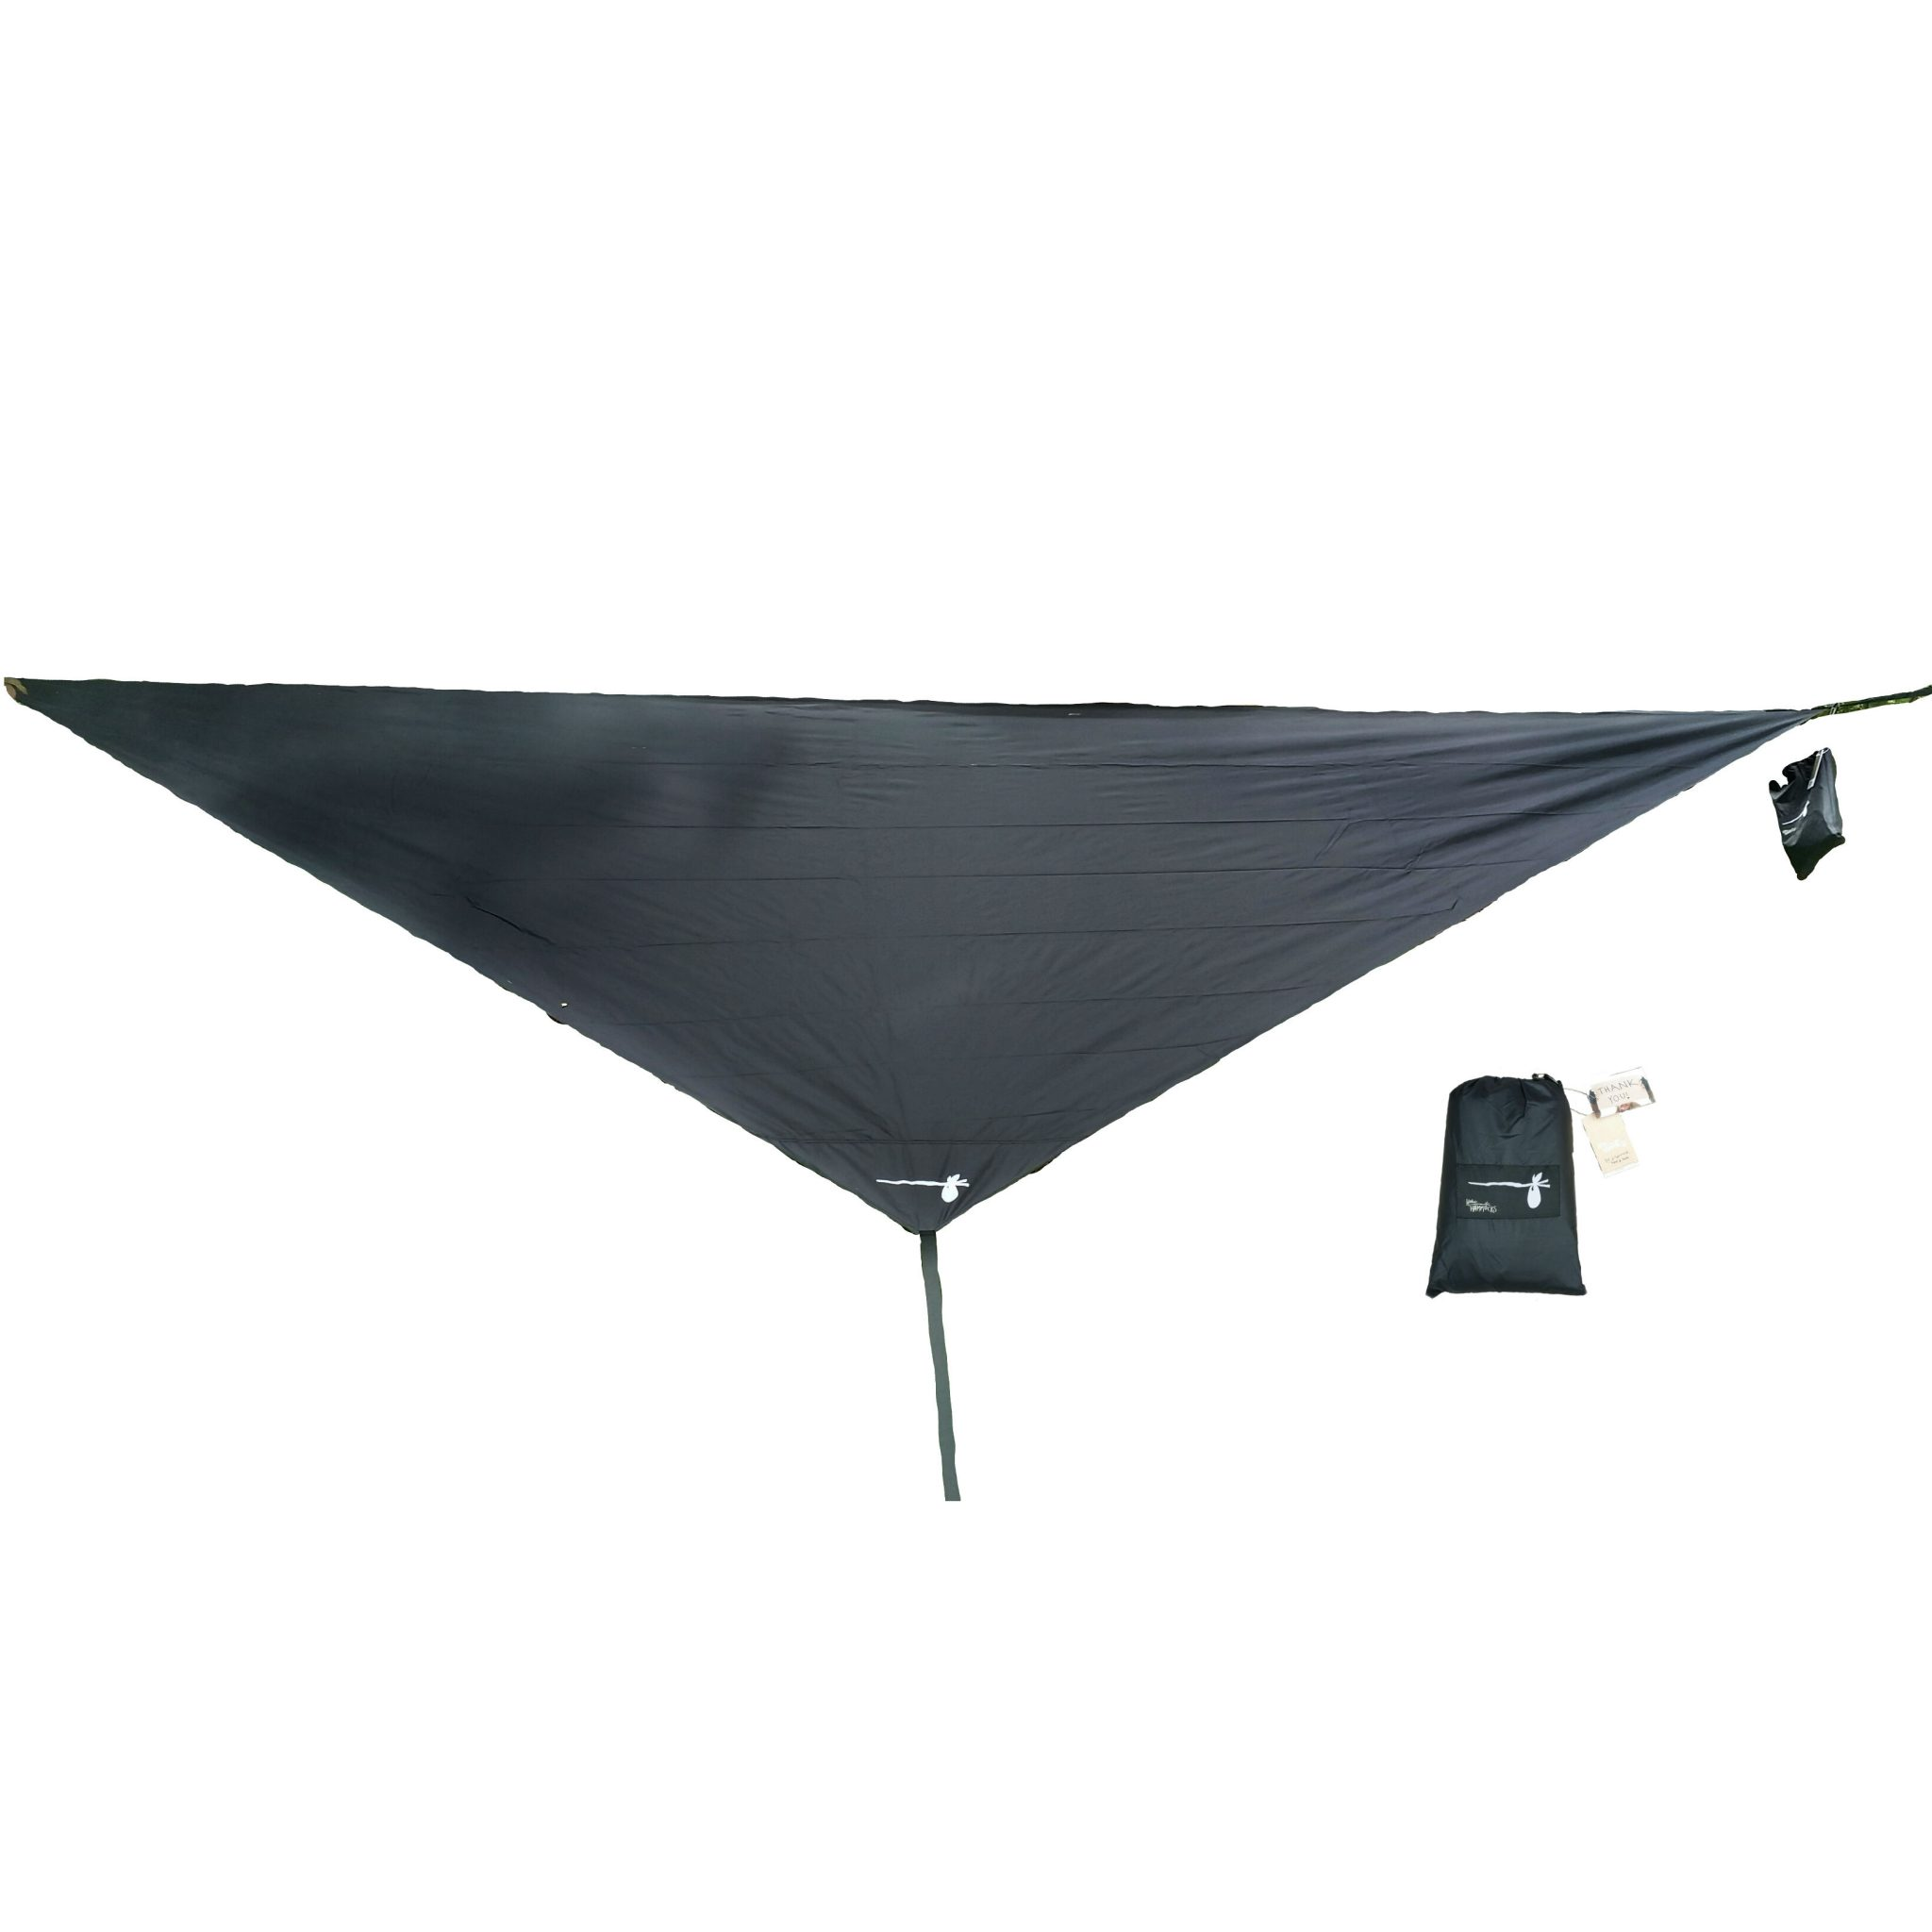 Rain Shield Hammock Rain Fly